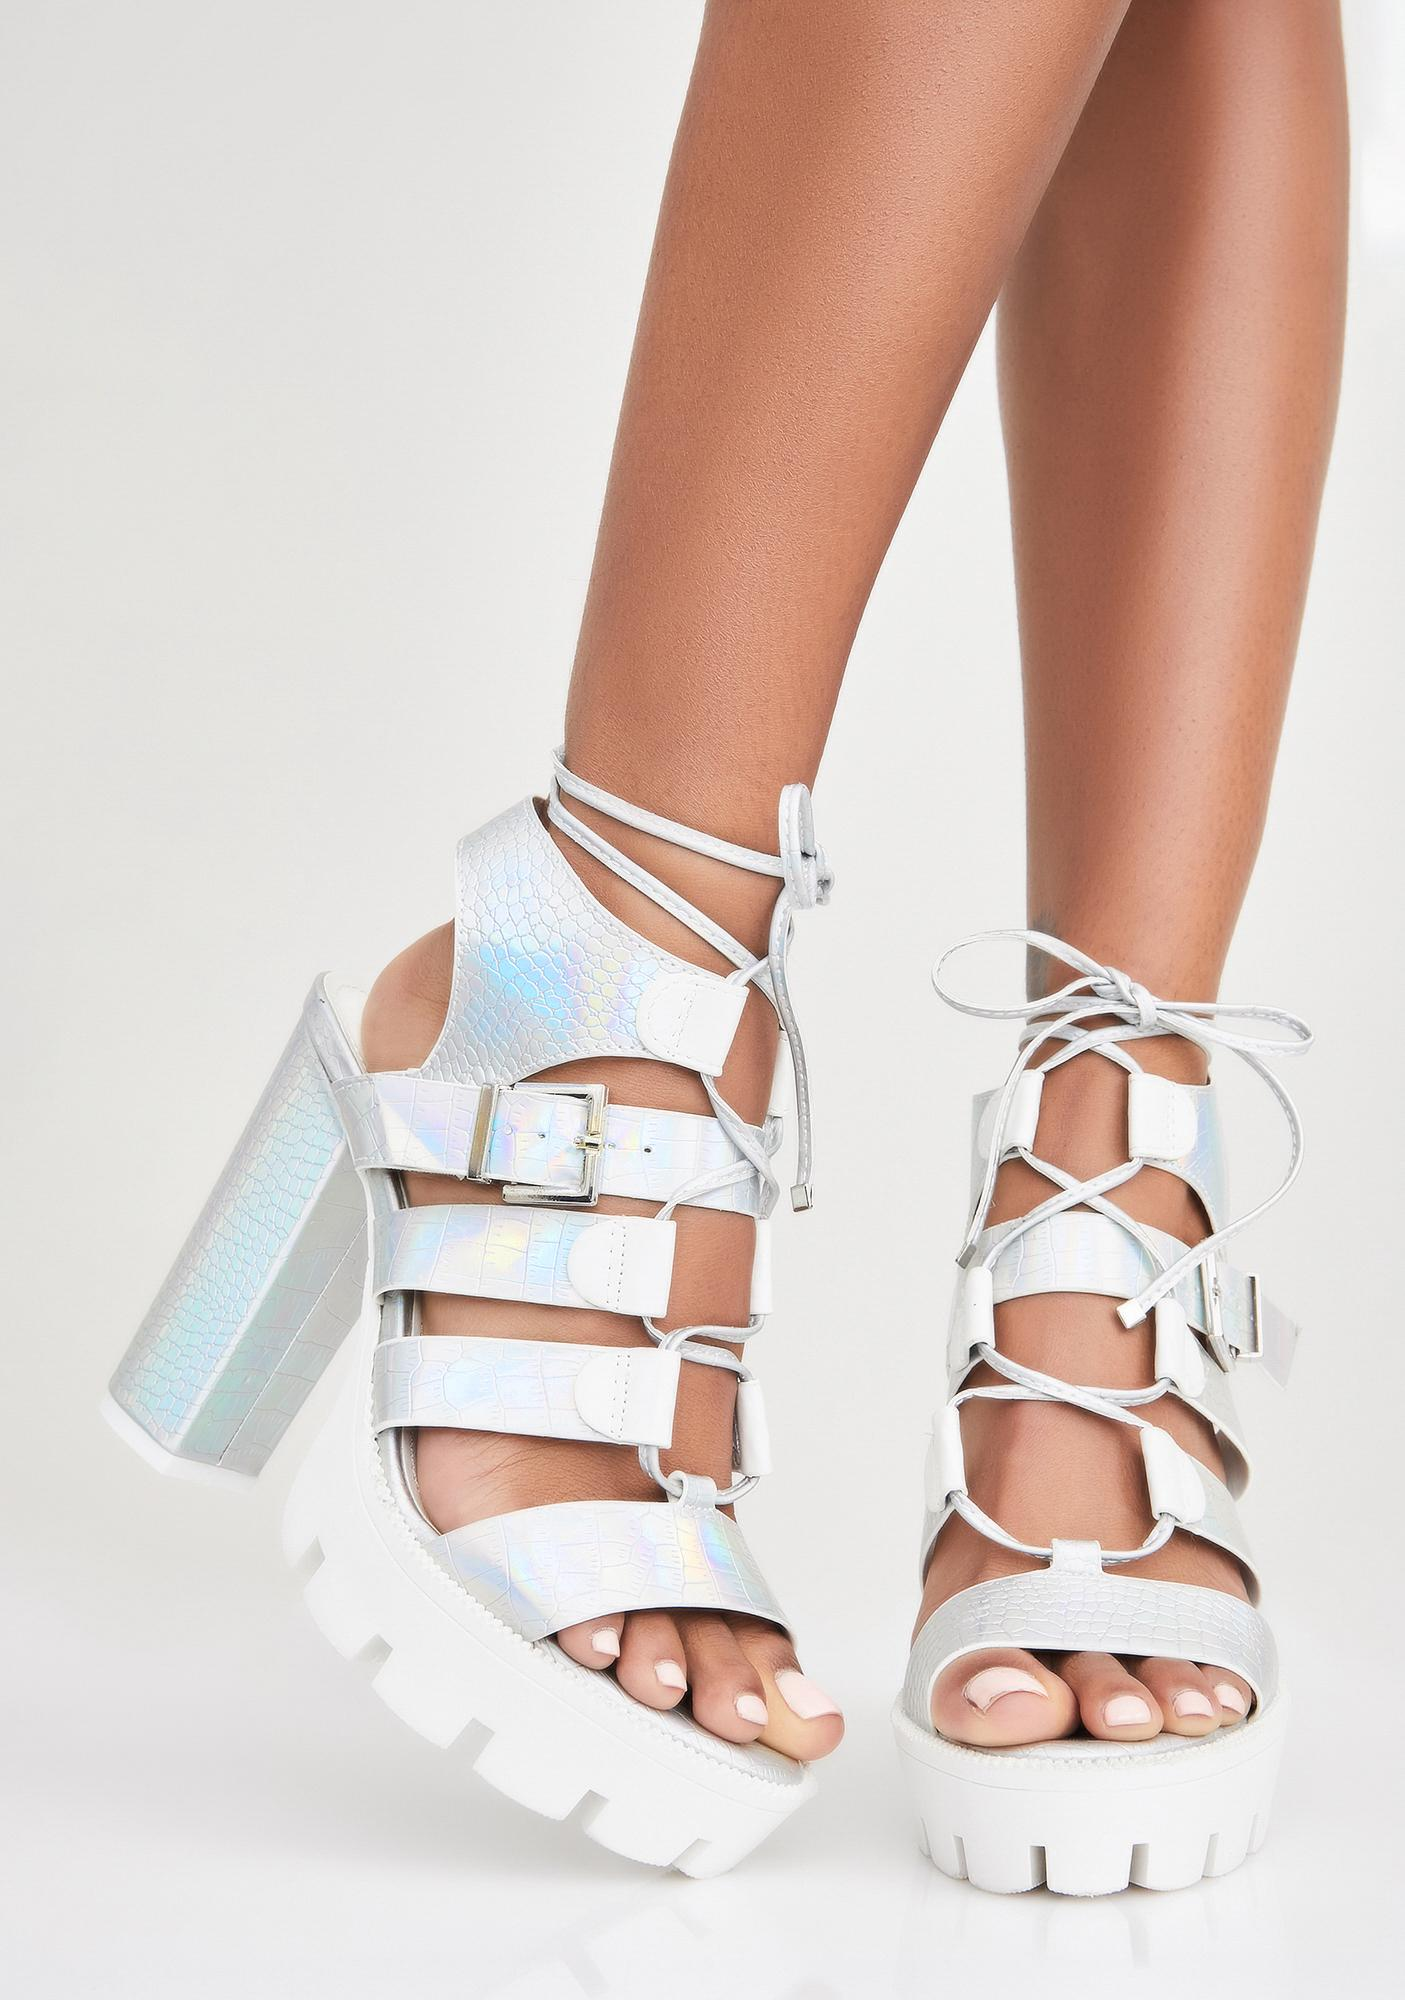 Cosmic Late Arrival Lace-Up Sandals